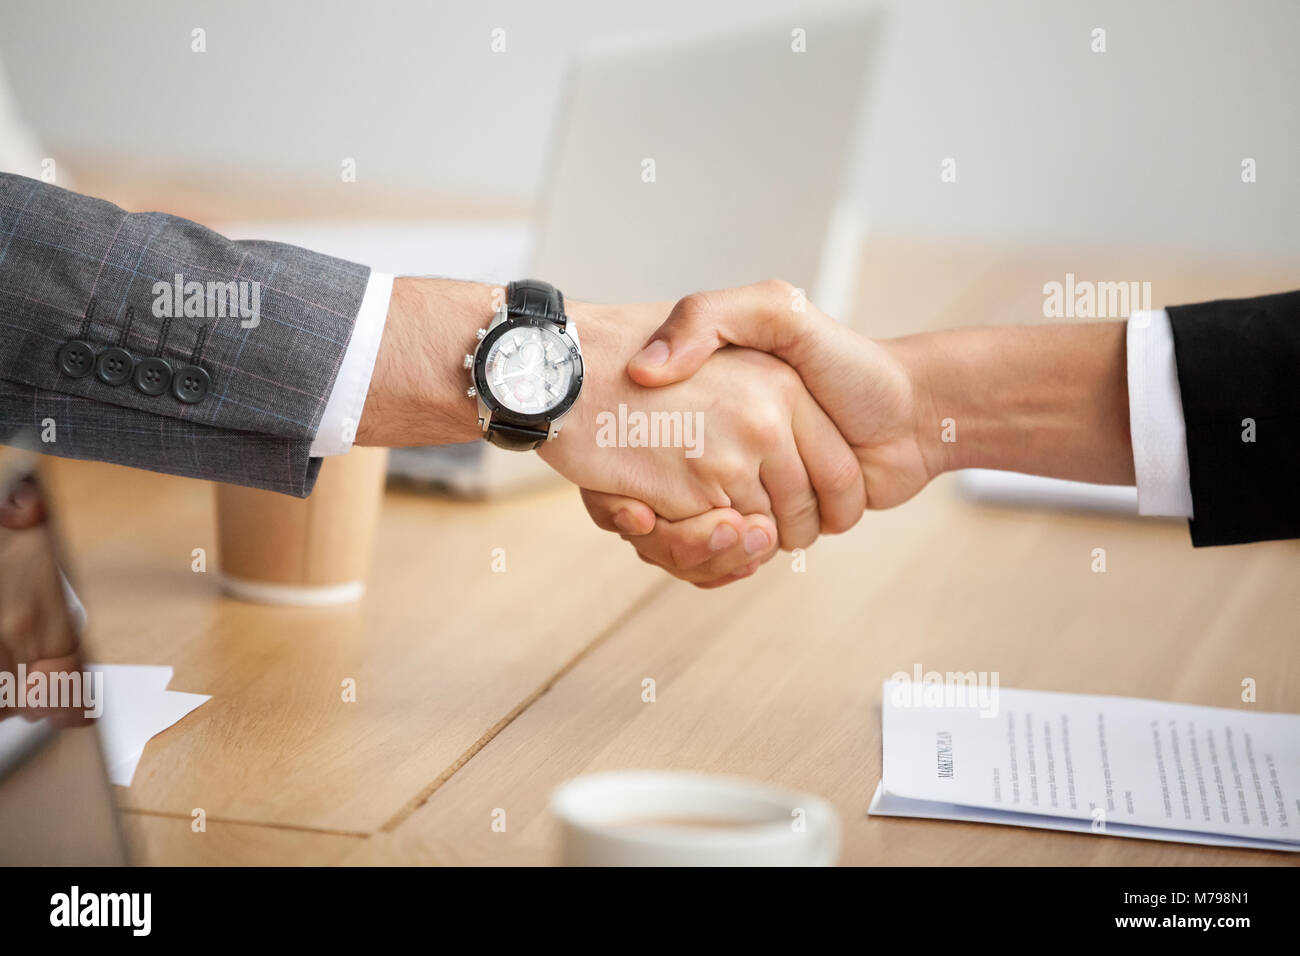 Closeup view of handshake, two businessmen in suits shaking hand - Stock Image